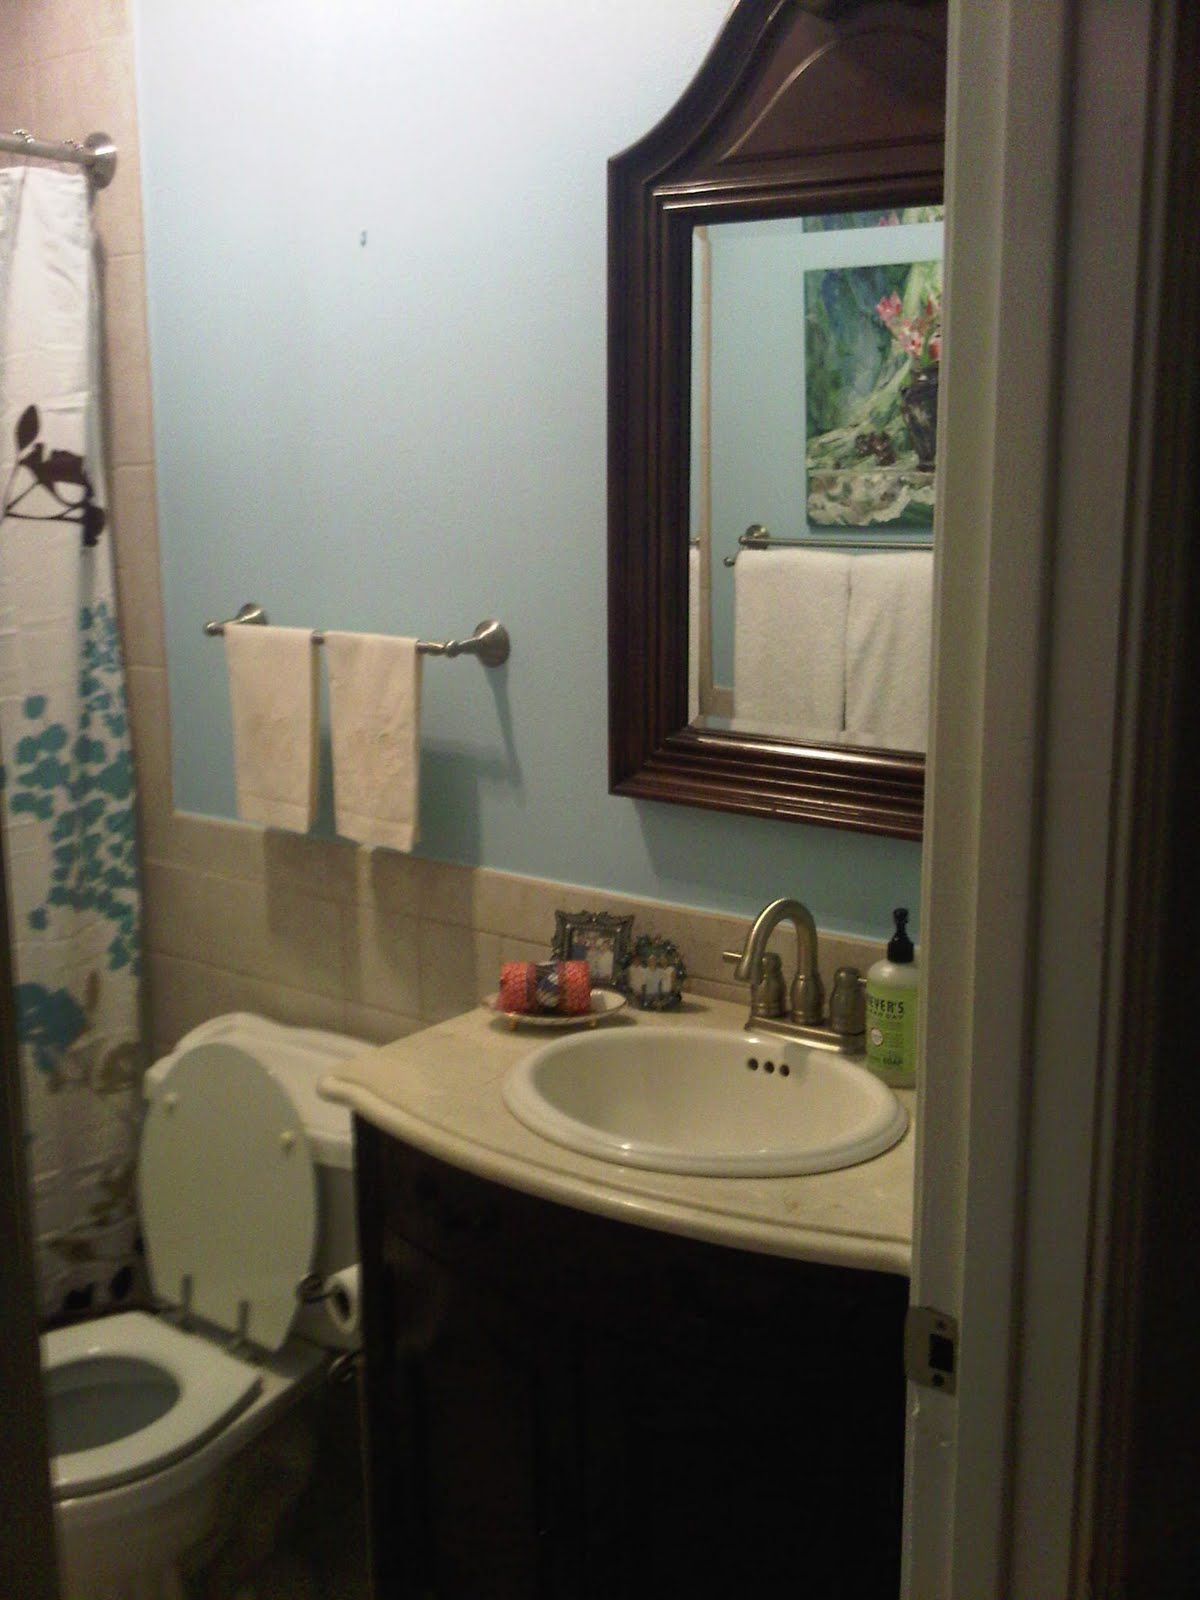 Paint Colors For Small Bathroom With No Windows